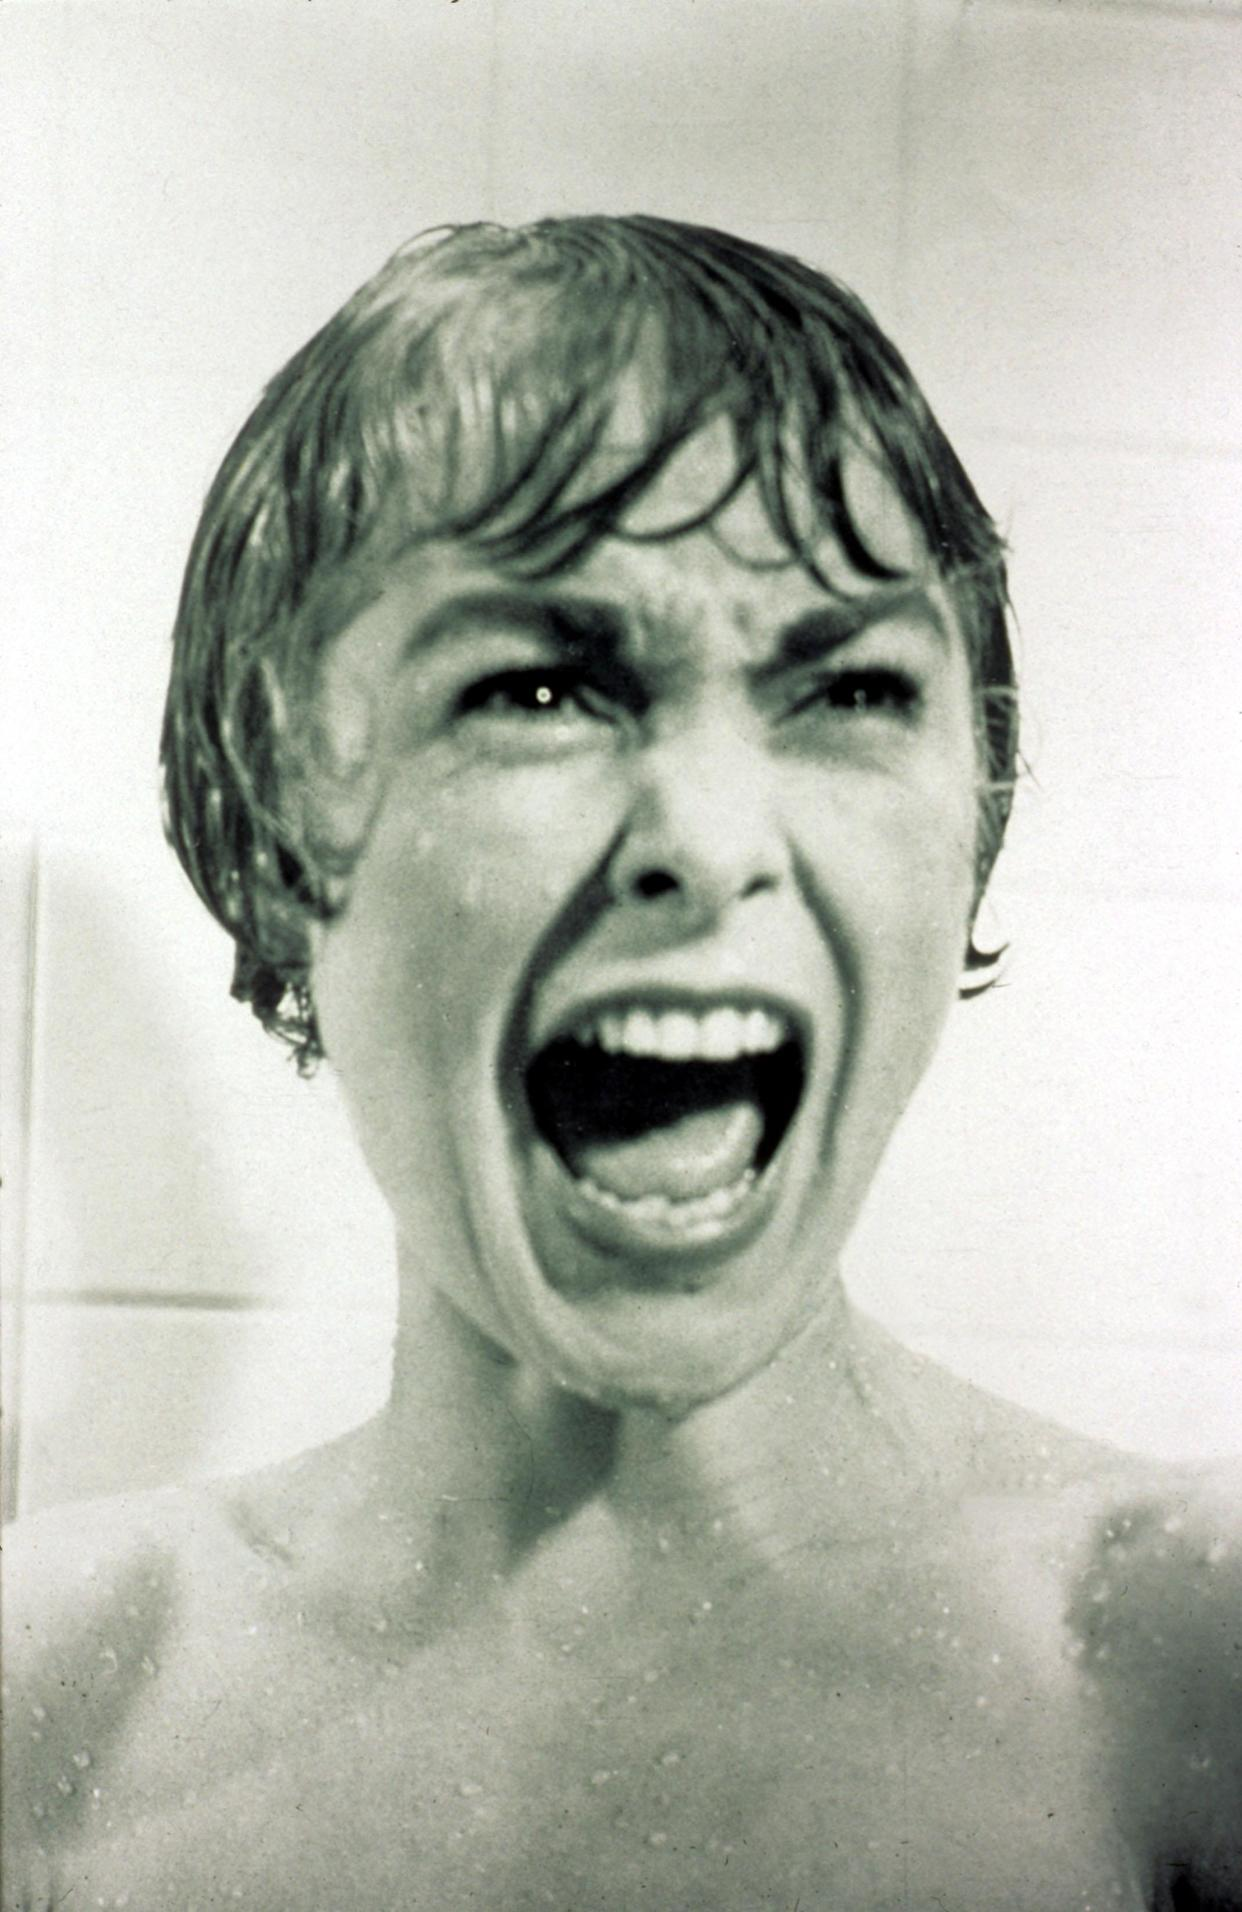 PSYCHO JANET LEIGH PSY 019